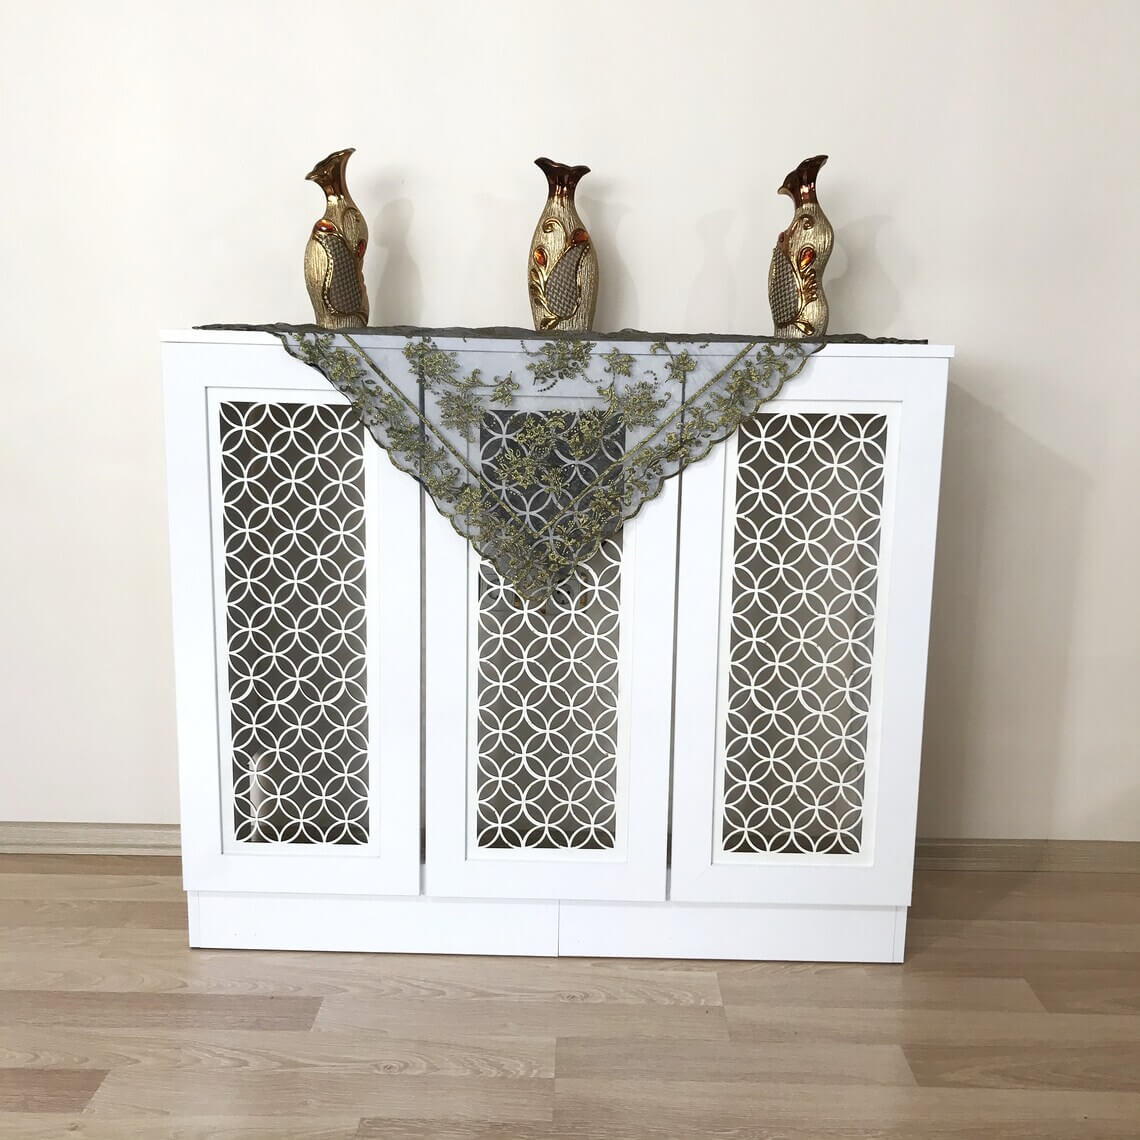 Wooden Rustic Radiator Cover Décor